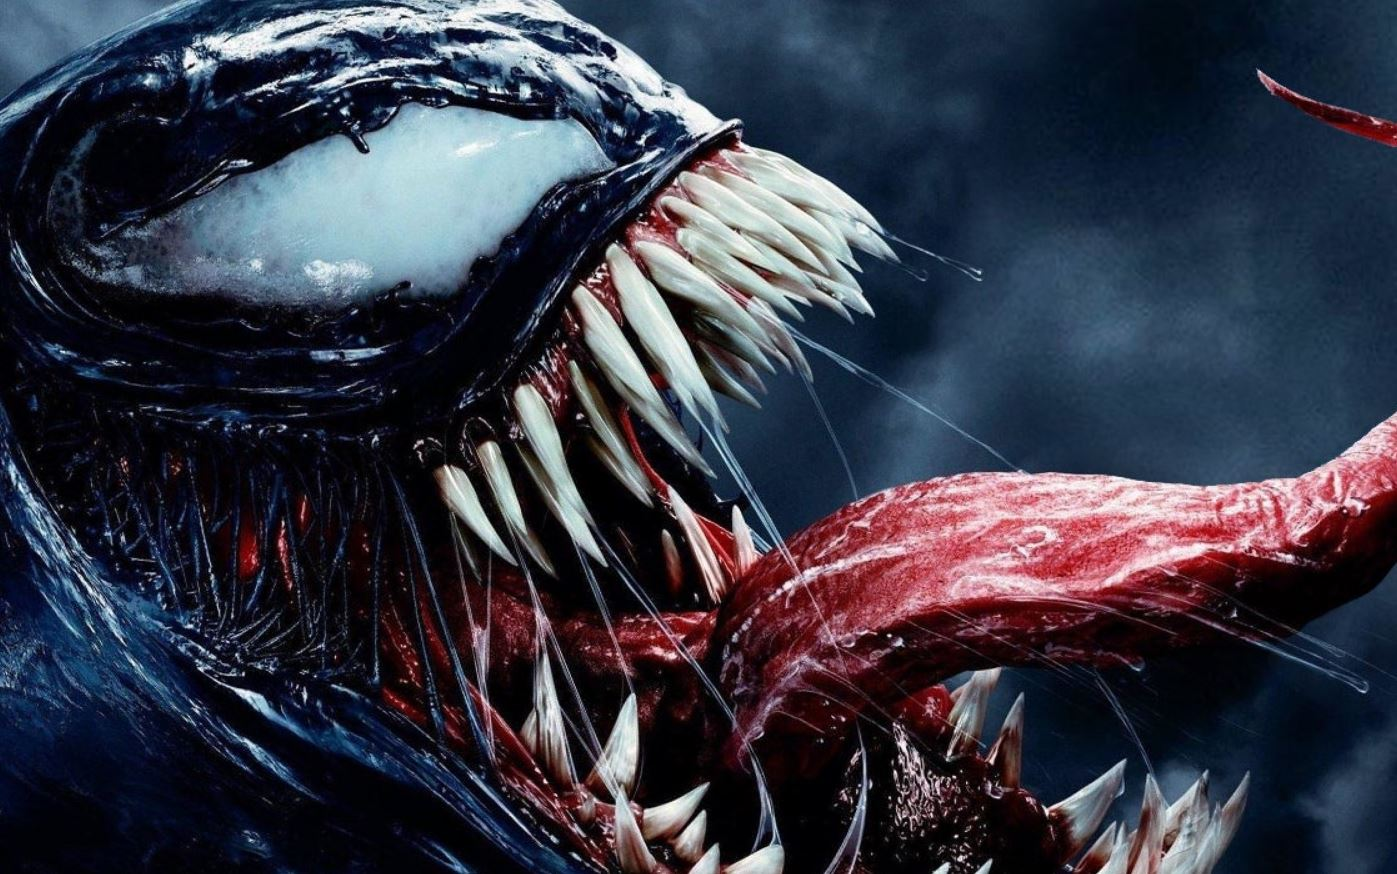 Venom 2: The Update News About The Release With A New Villian, Take A Look